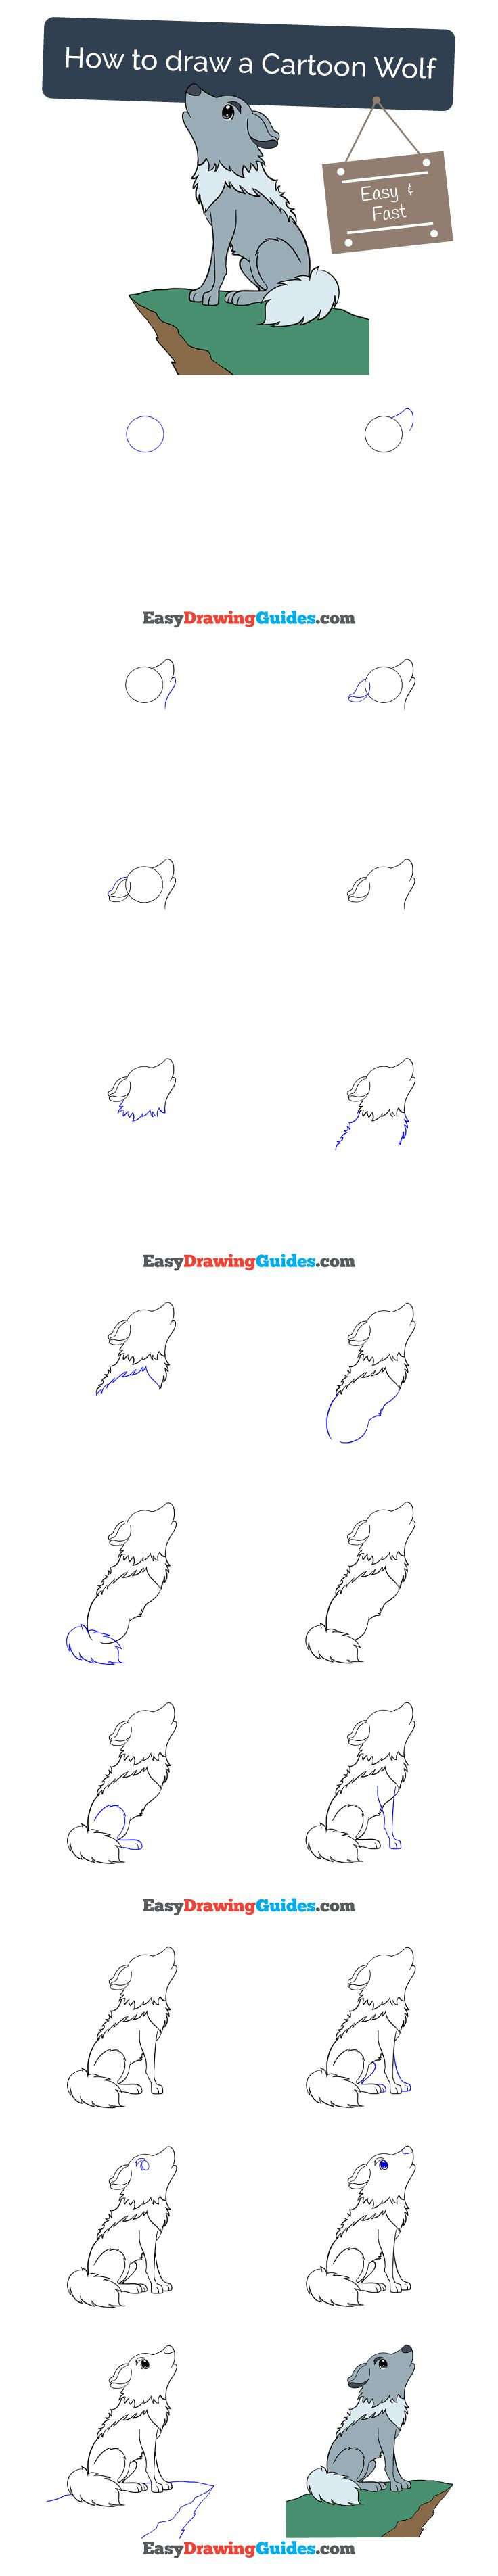 Learn How To Draw A Cartoon Wolf: Easy Stepbystep Drawing Tutorial